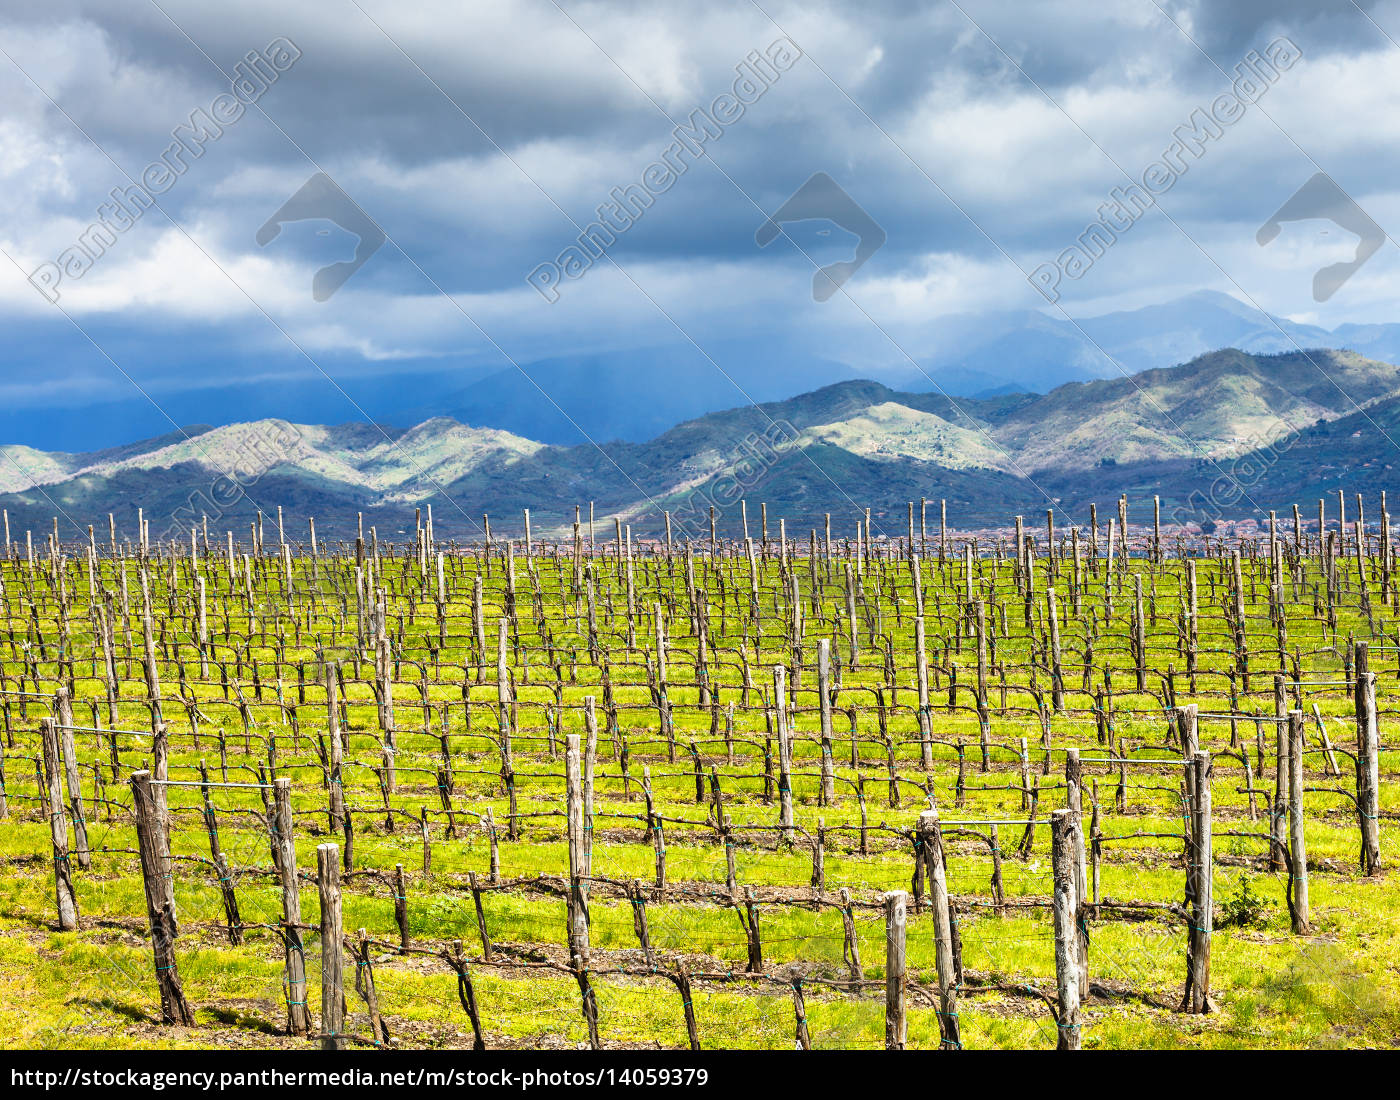 empty, vineyard, in, etna, winemaking, region - 14059379